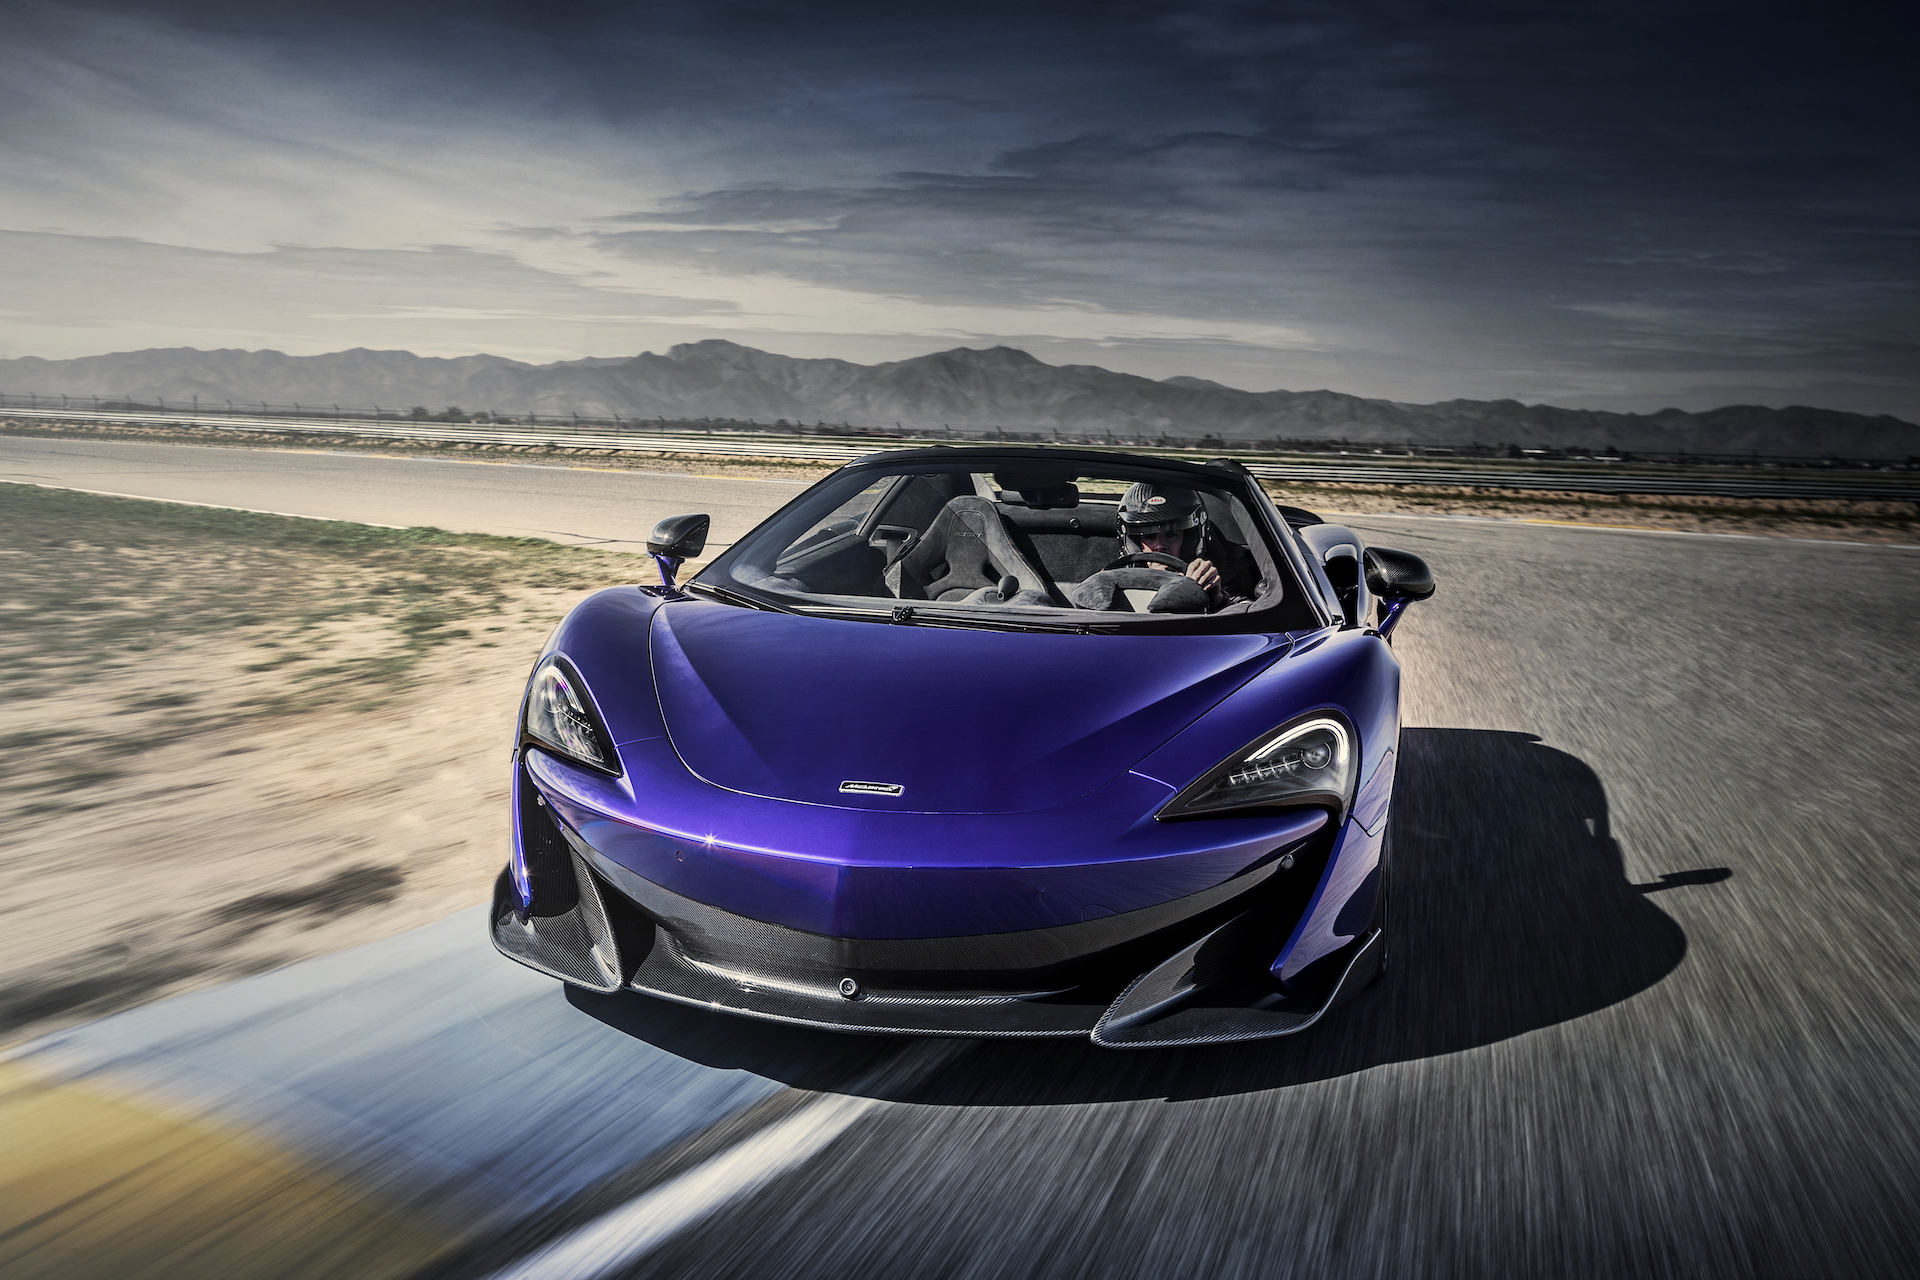 2020 McLaren 600LT Spider Wallpapers 99 HD Images   NewCarCars 1920x1280